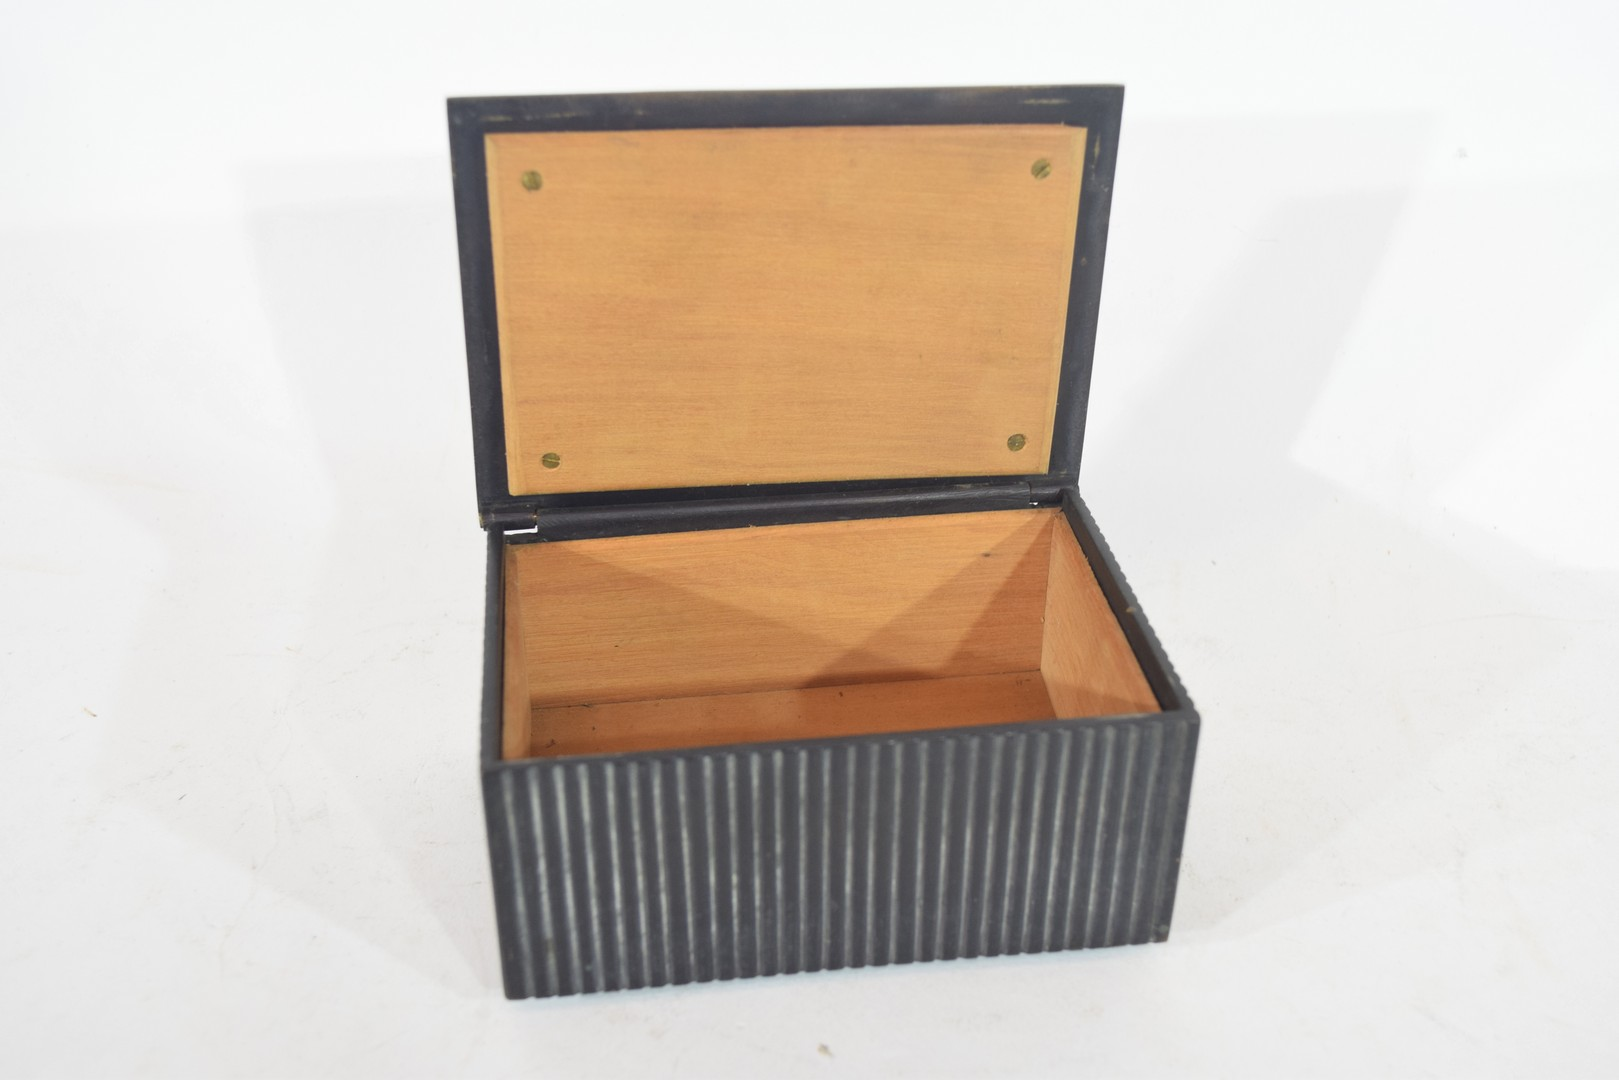 Box, the top modelled with two Corgi style dogs - Image 5 of 6